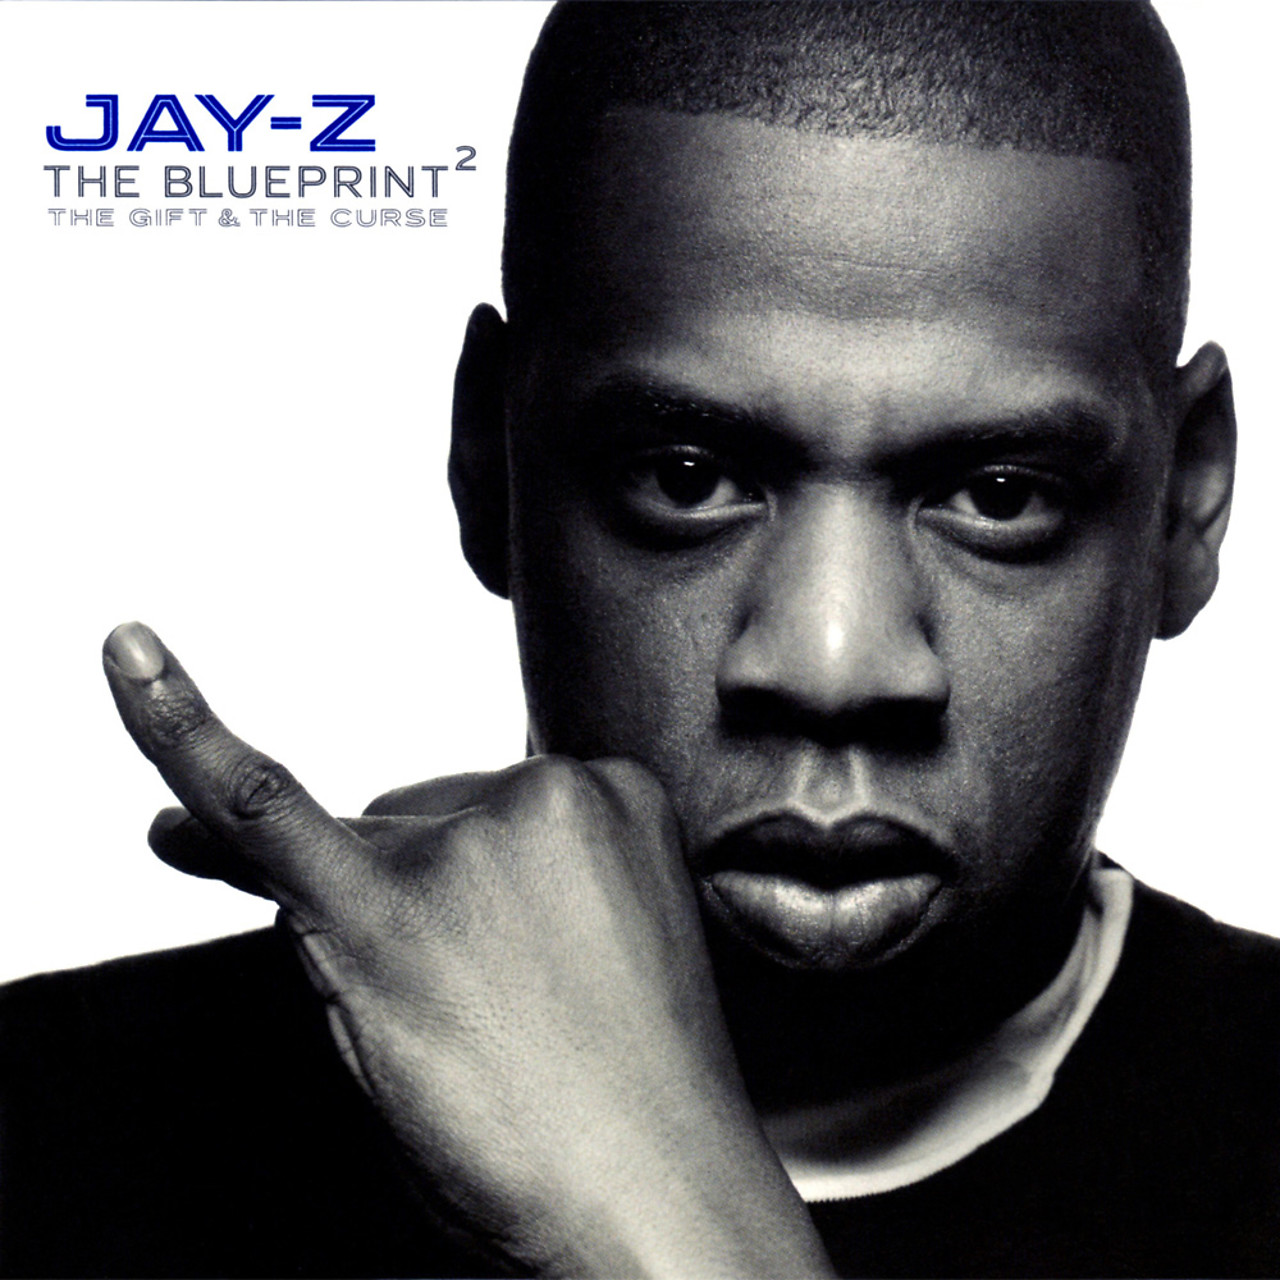 The blueprint 2 the gift the curse explicit version by jay z the blueprint 2 the gift the curse explicit version by jay z arena music malvernweather Gallery